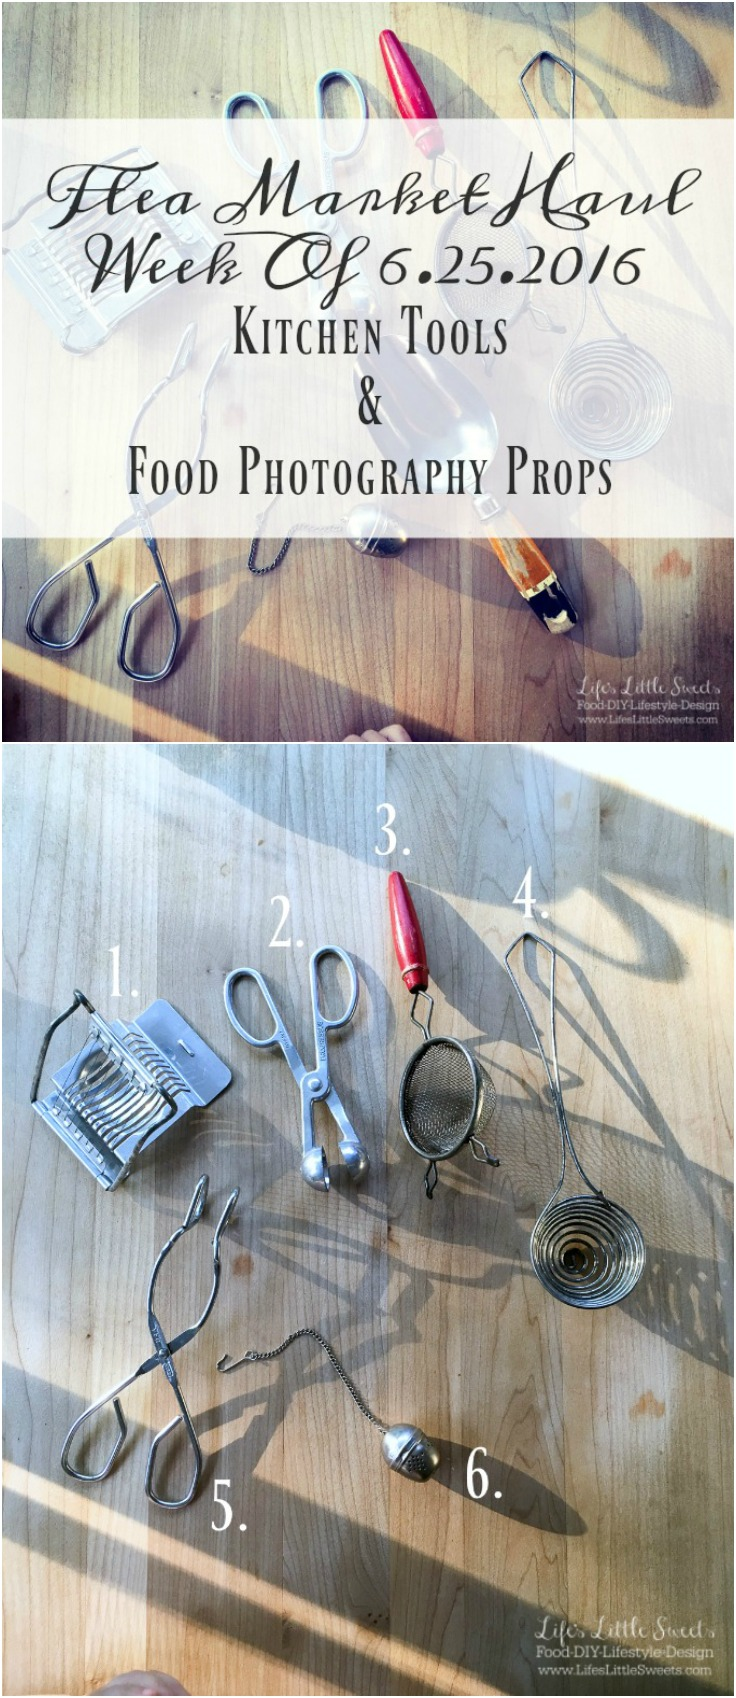 flea-market-haul-week-of-6-25-2016-kitchen-tools-food-photography-props-antiques-www-lifeslittlesweets-com-736x1698-pin